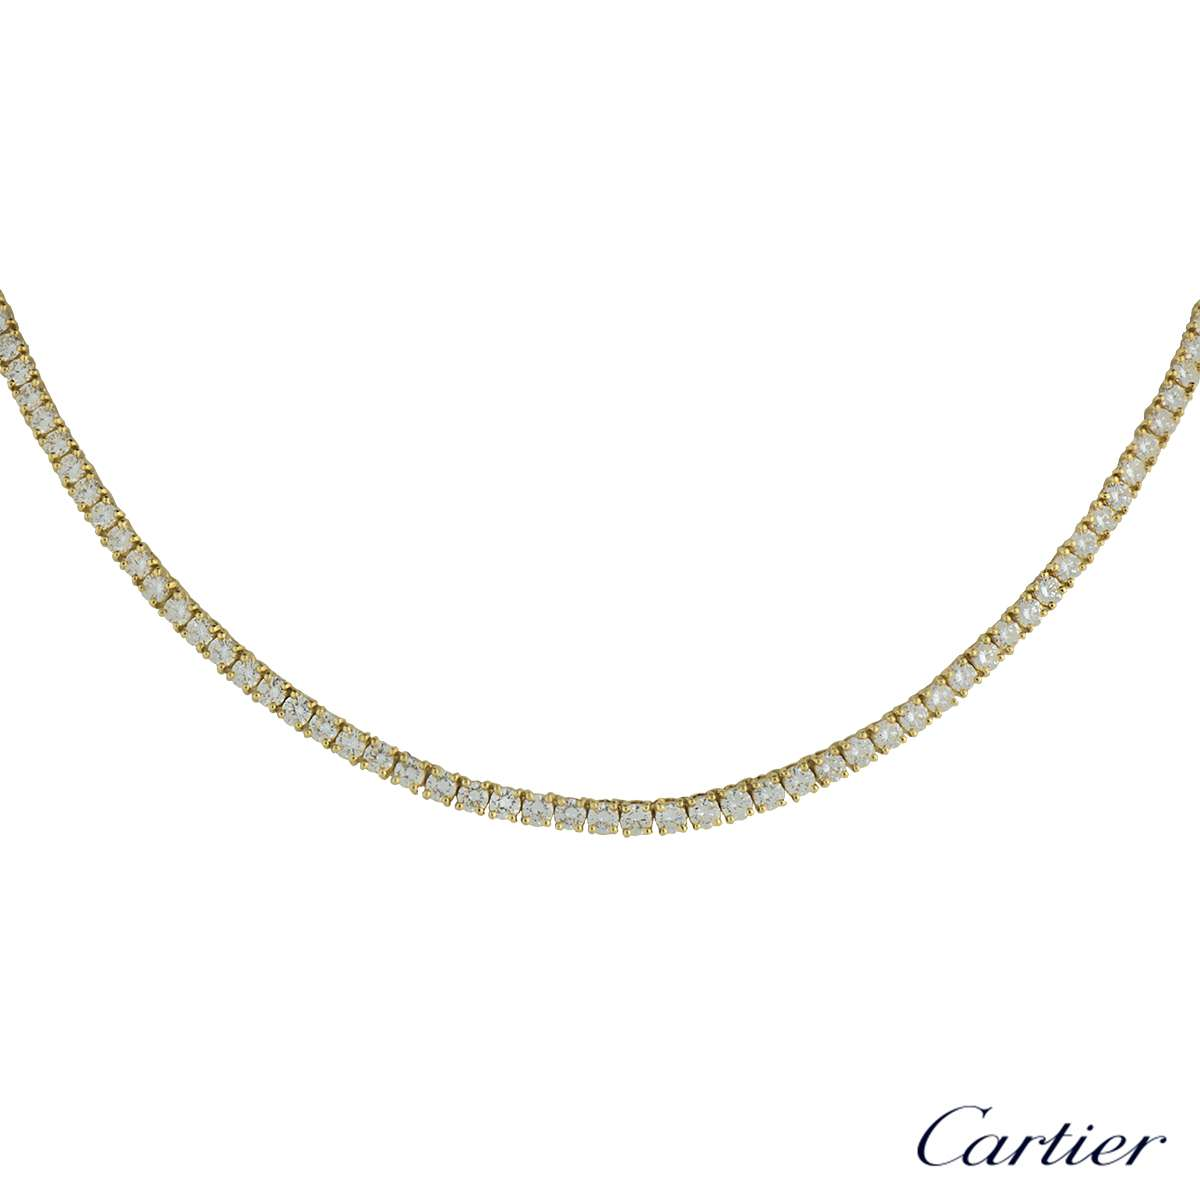 Cartier 18k Yellow Gold Diamond Line Necklace 10.30cts